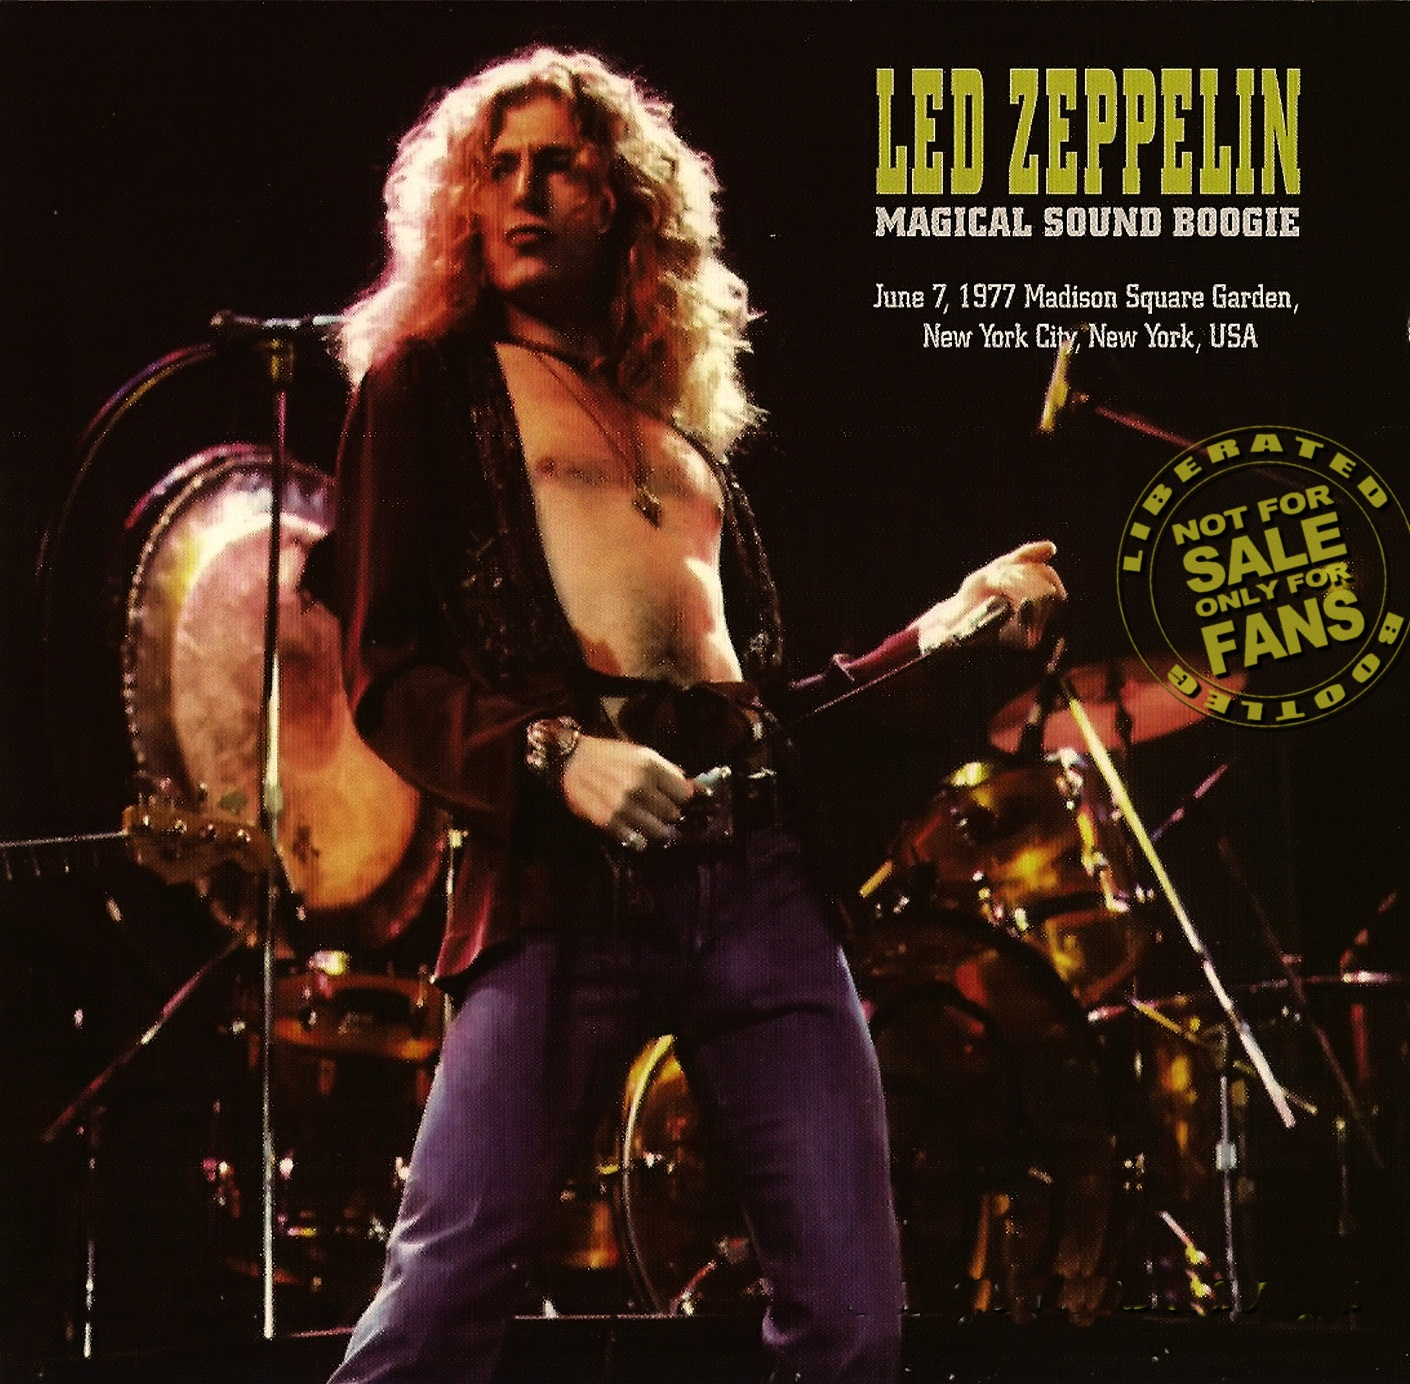 1969 - Led Zeppelin - Magical Sound Boogie